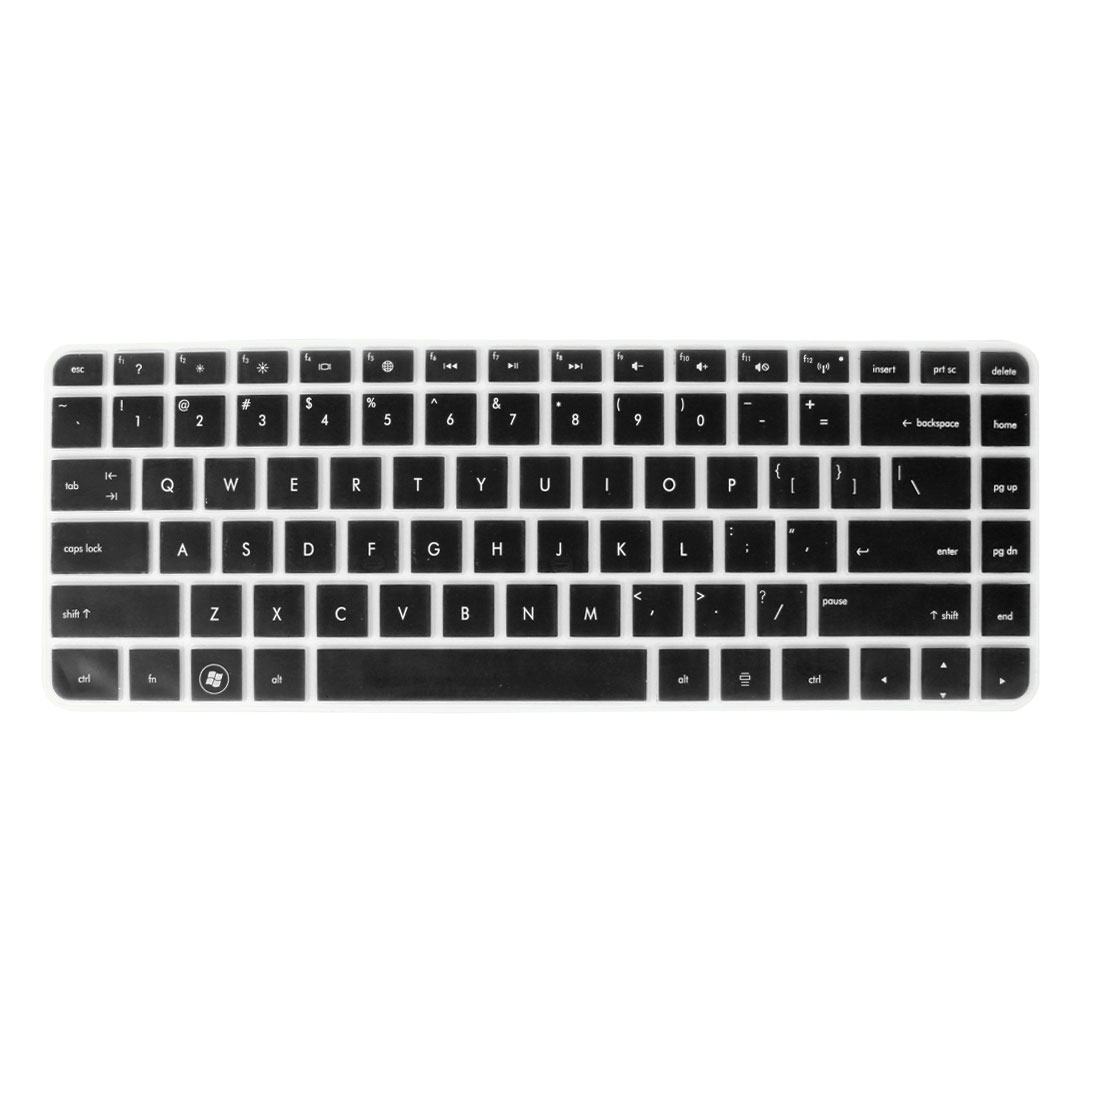 Laptop Keyboard Protector Protective Film Black Clear for HP 431/430/DV4/4230S